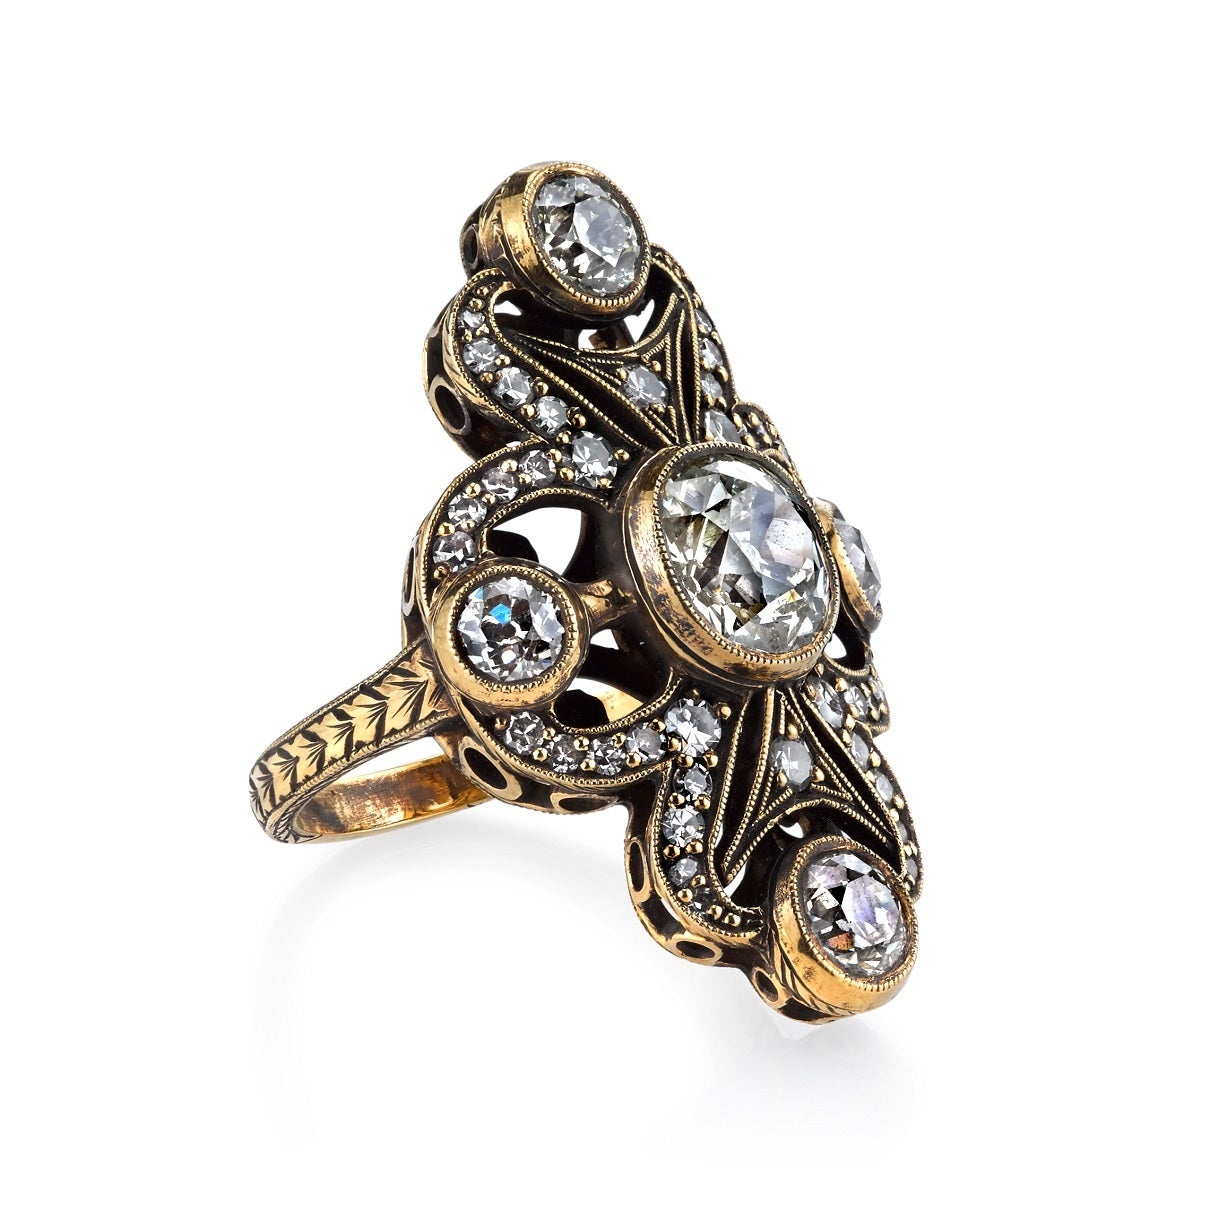 1.69ct N/I1 vintage Cushion cut diamond center stone with 1.54ctw old European cut diamond accents set in a handcrafted 18K oxidized yellow gold mounting.  Dynamic lines, intricate details and swirl motifs give this one of a kind ring its old world